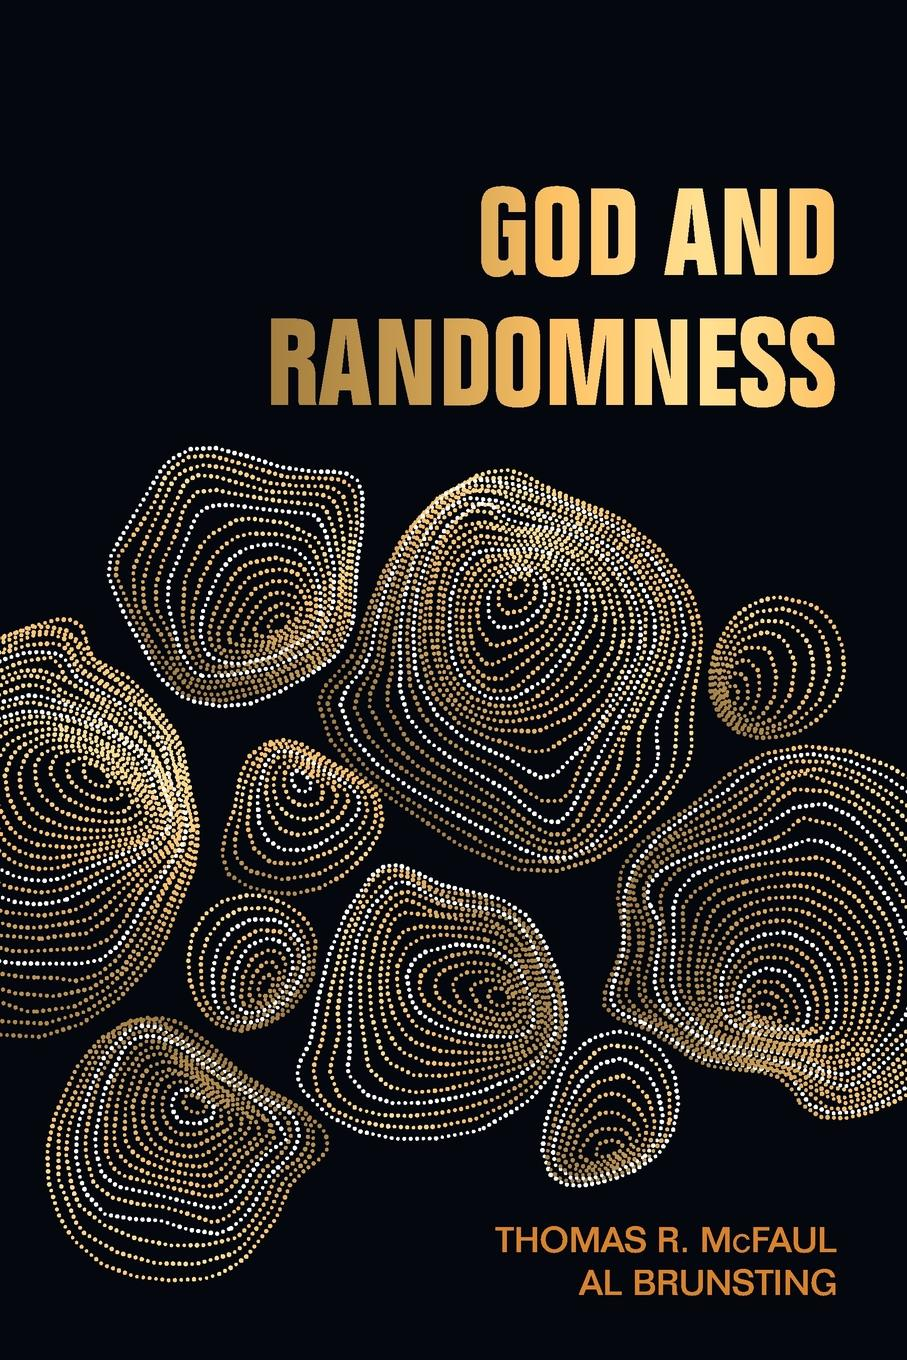 Thomas R. McFaul, Al Brunsting God and Randomness